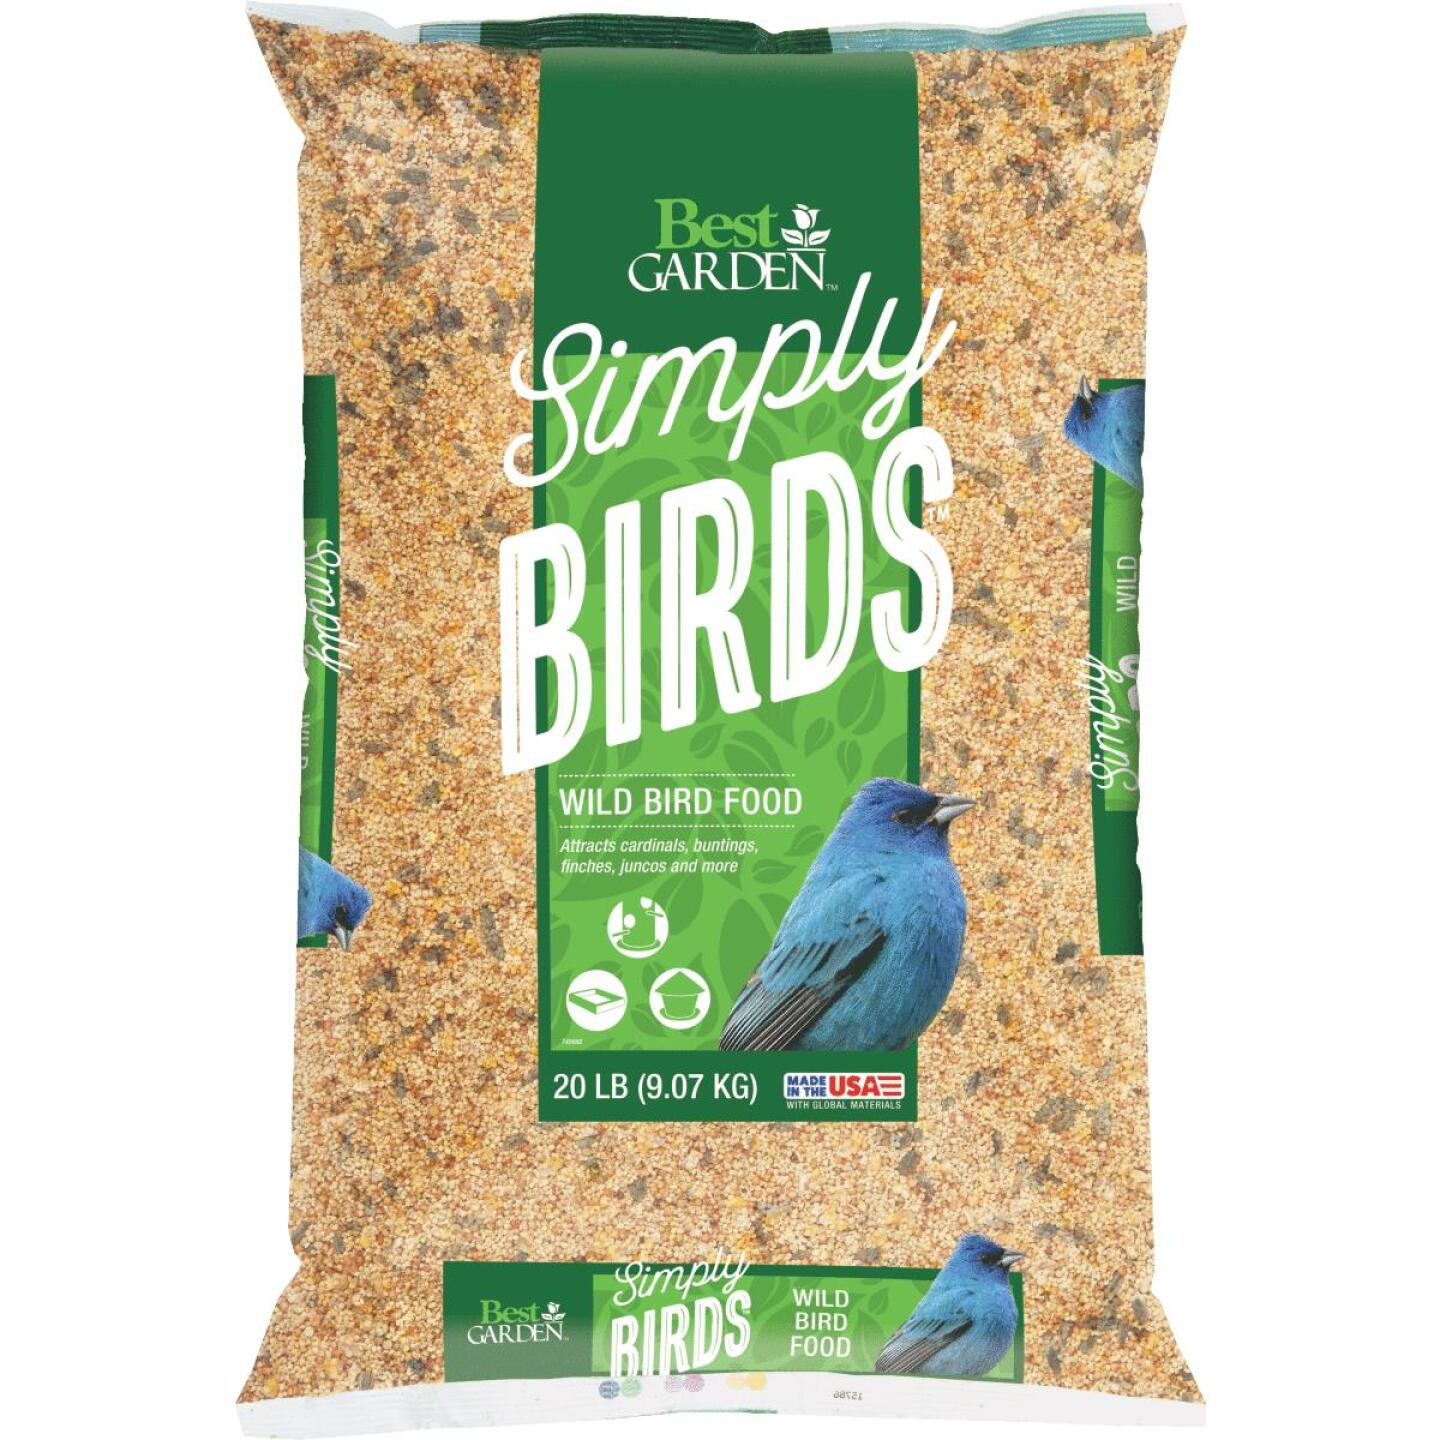 Best Garden Simply Birds 20 Lb. Wild Bird Seed Image 1